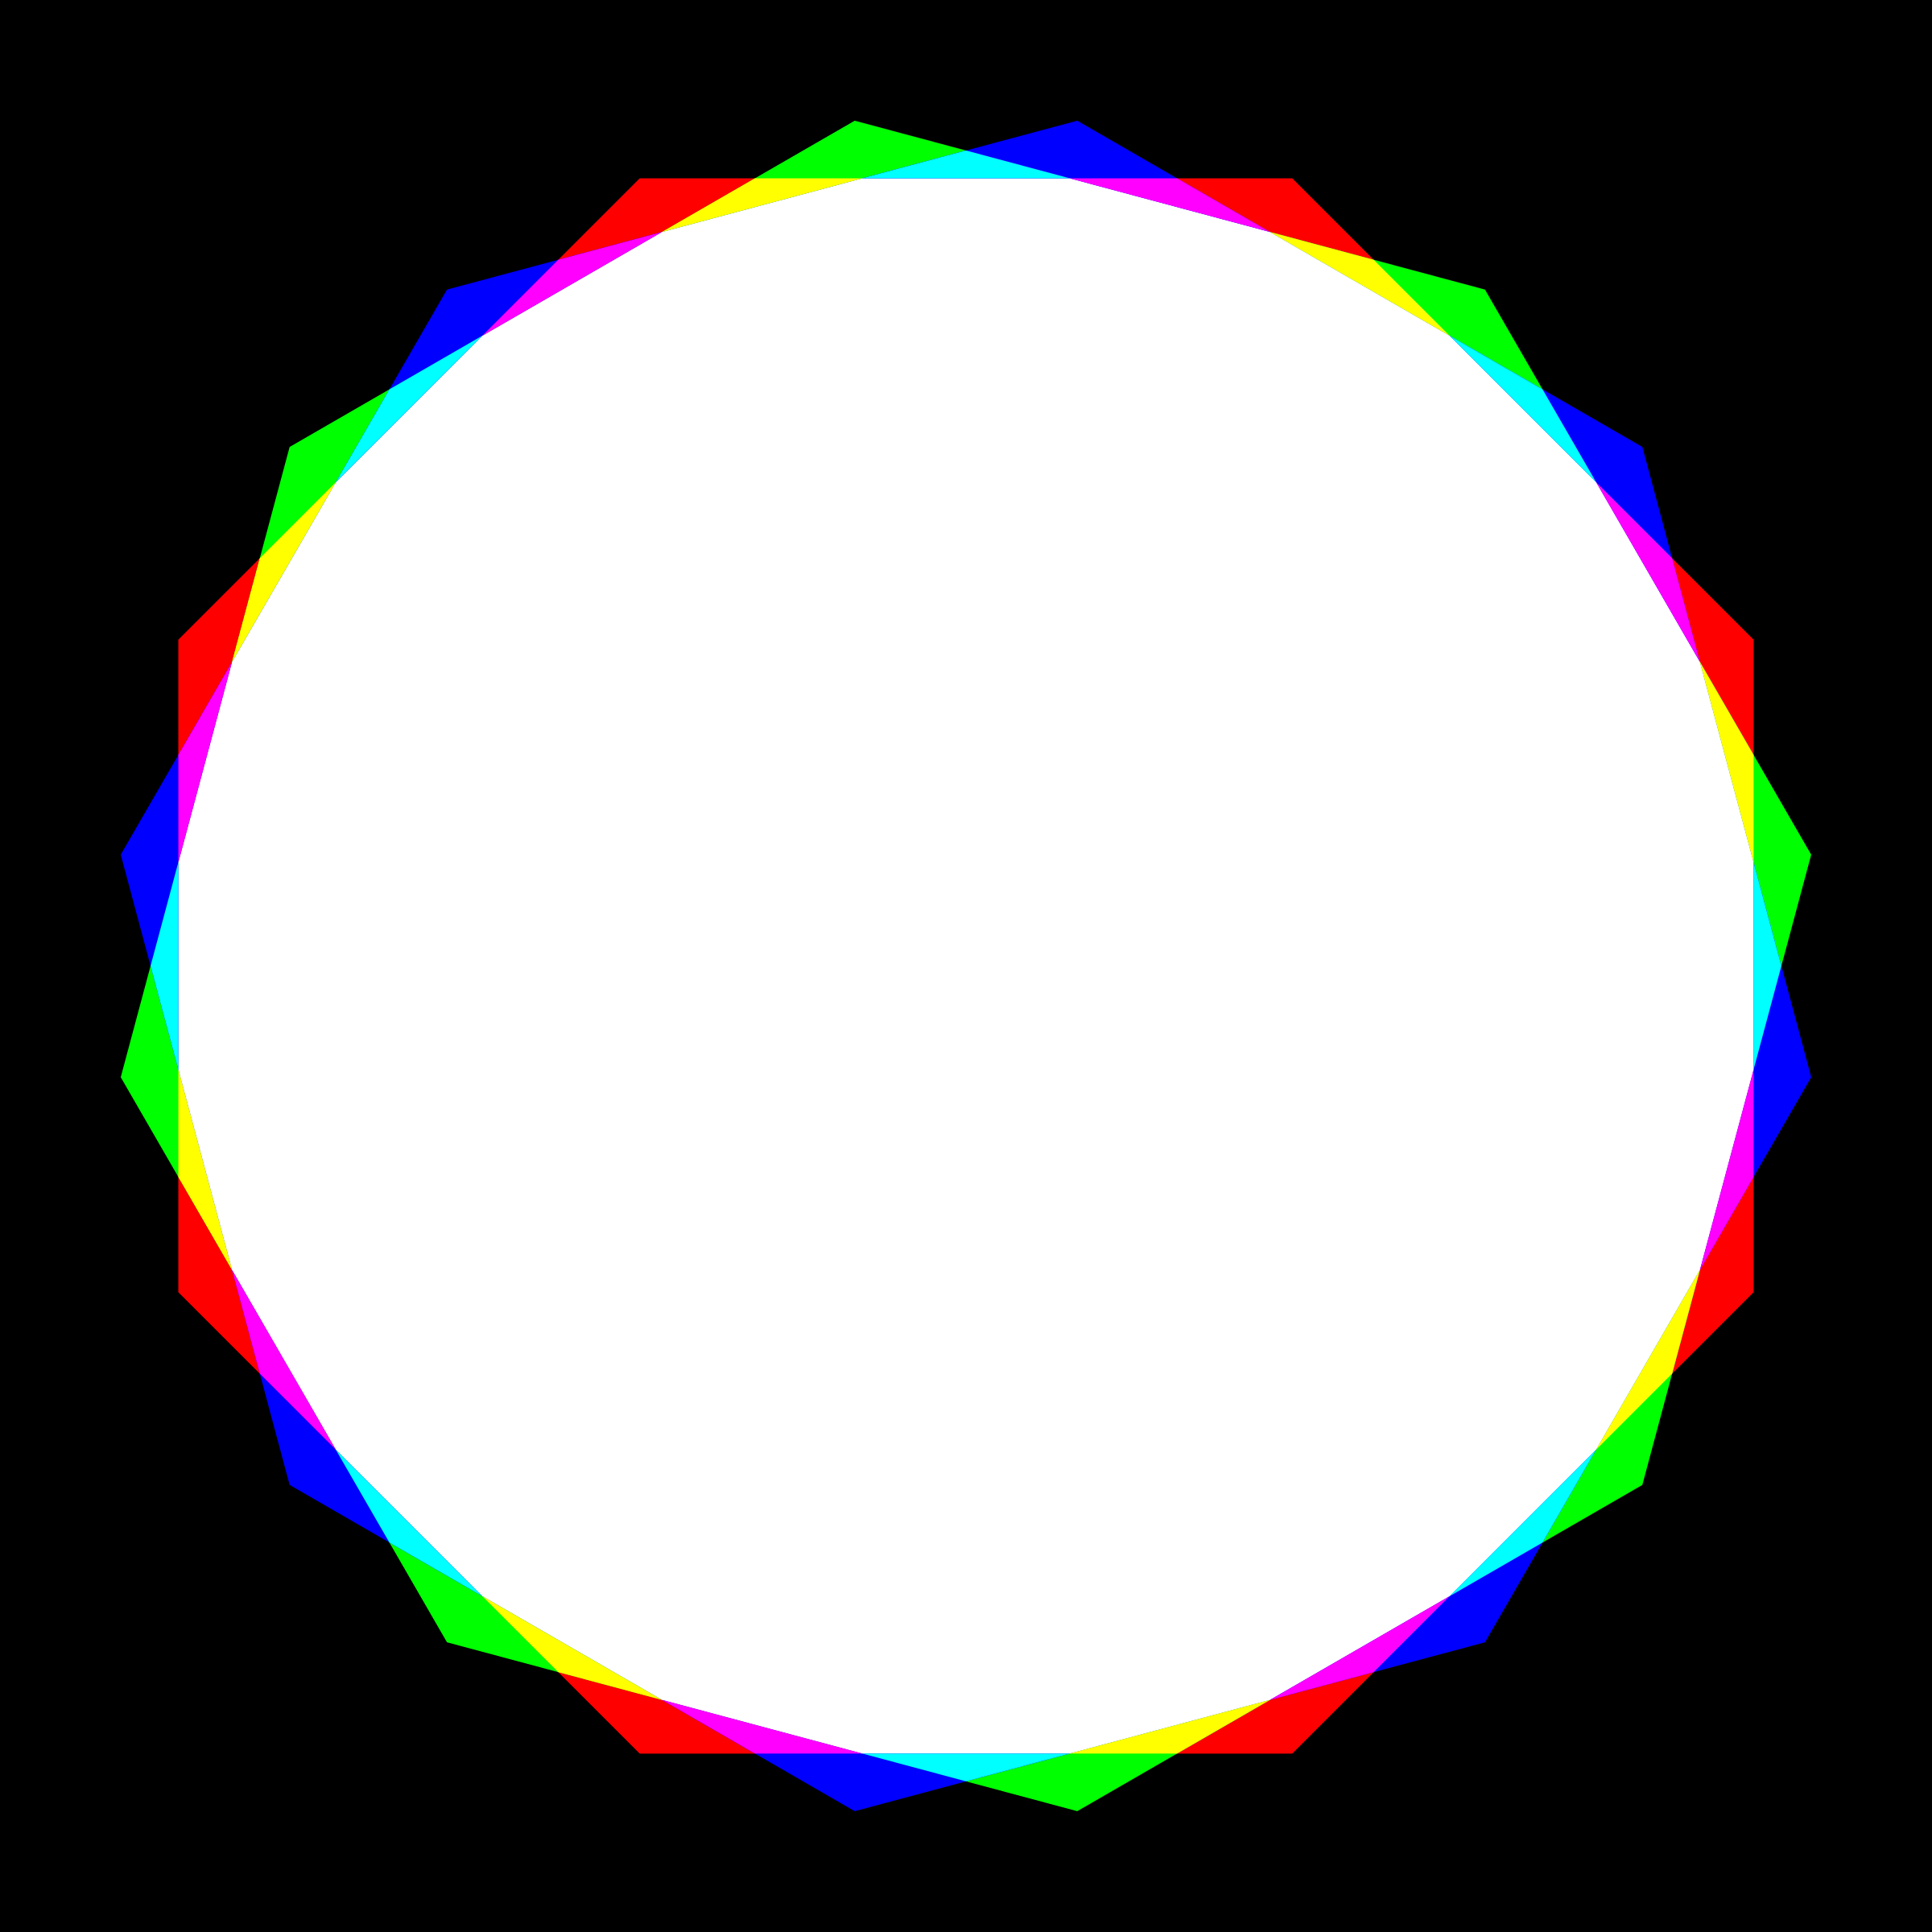 24gon rgb mix by 10binary